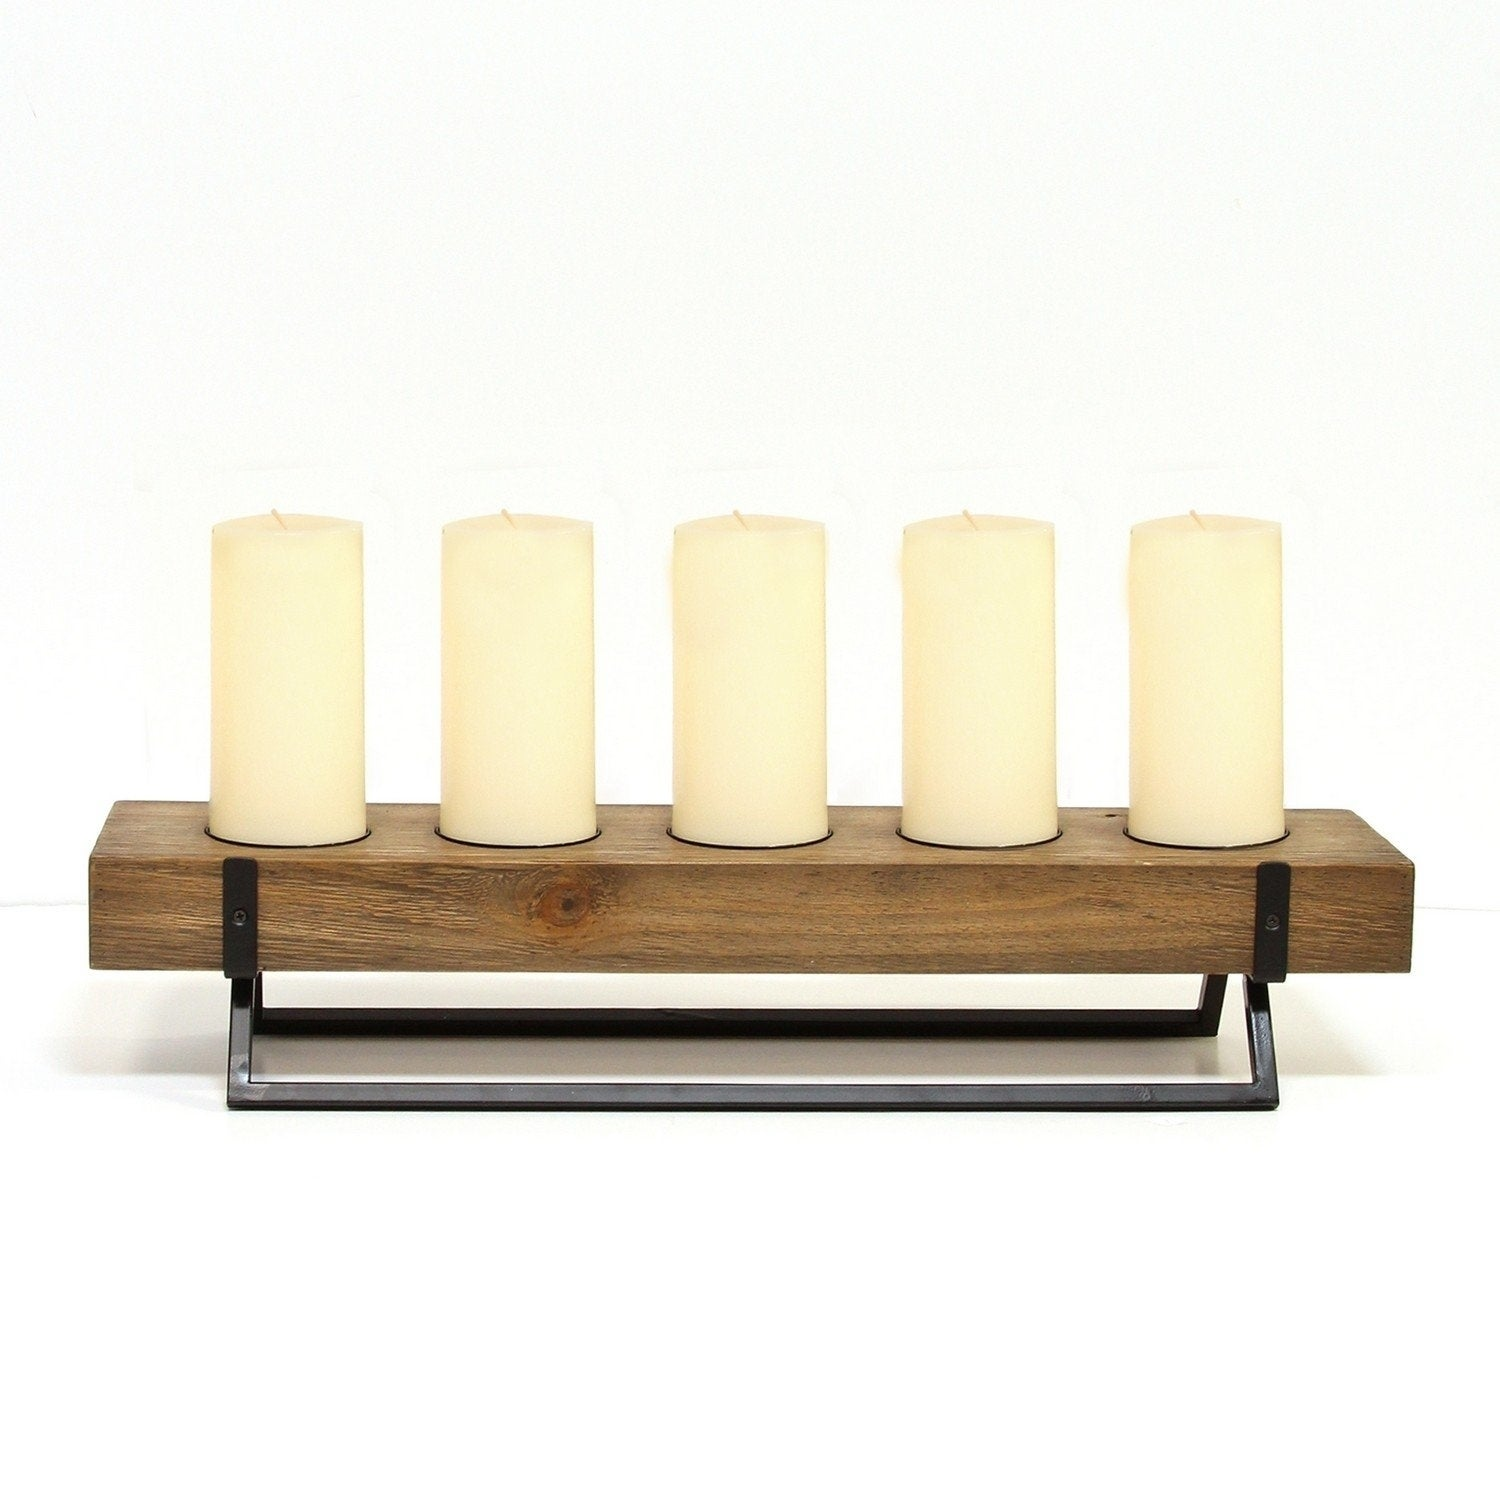 Carbon Loft Rustic 5 Candle Holder Centerpiece Overstock 27465422